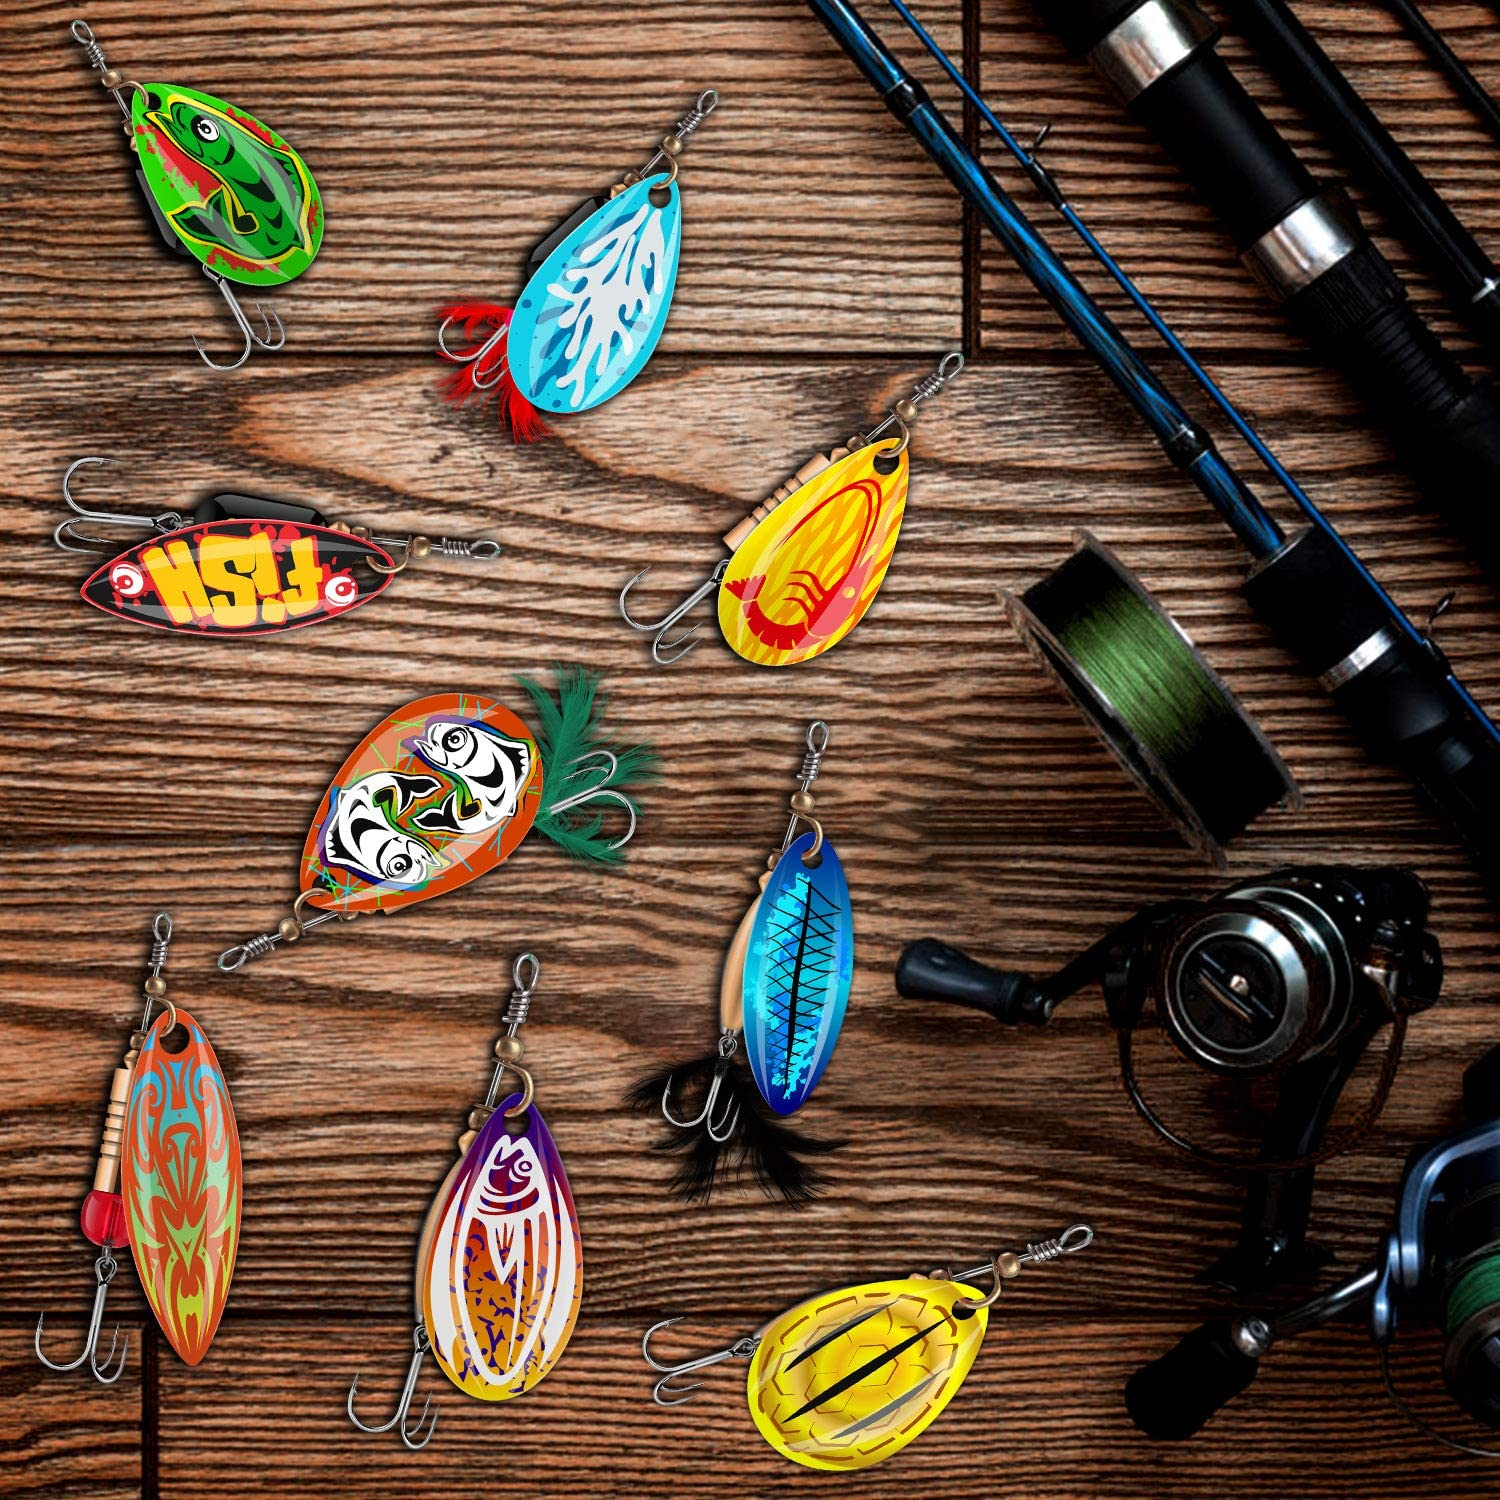 Angler Bass Lures Husband Spinning Lures Colorful Fishing Lures Trout Lures Hard Metal Spinner Baits Kit for Boyfriends 2020 Patent Design Fishing Spoon Fathers